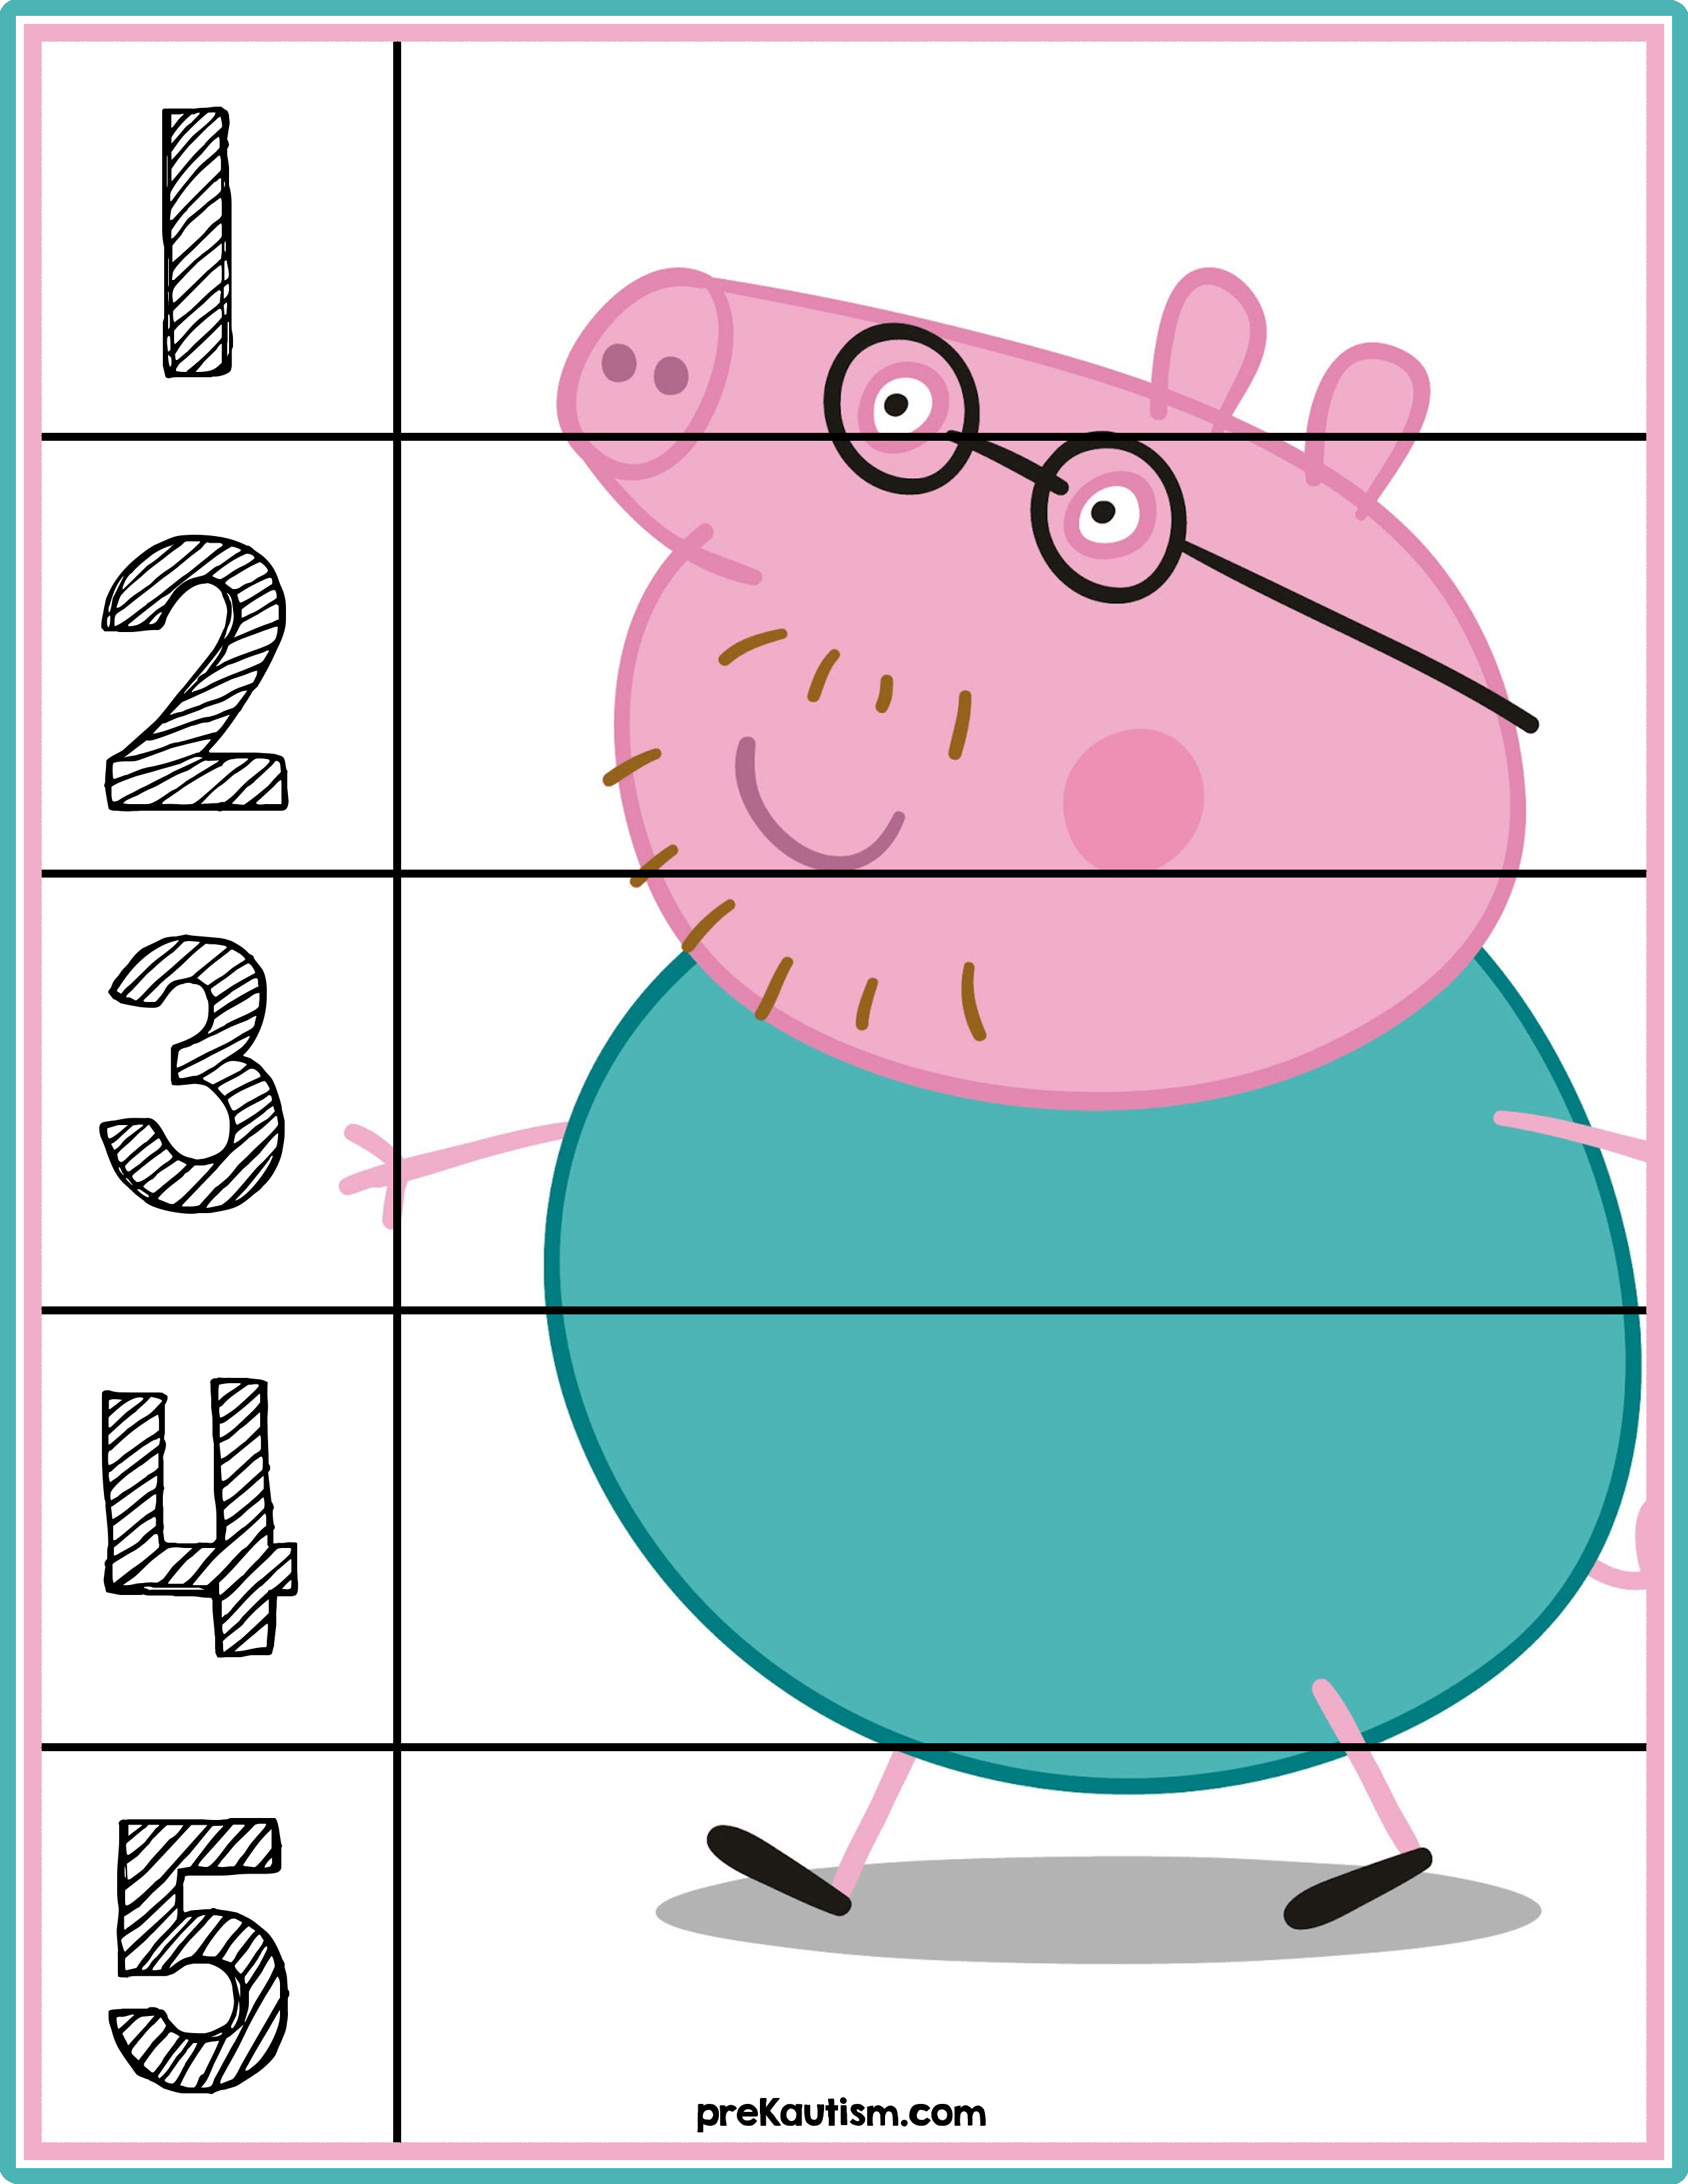 Peppa Pig Number Puzzles #'s 1-5 | Autism Activities For Ages 3-5 - Printable Number Puzzles For Preschoolers